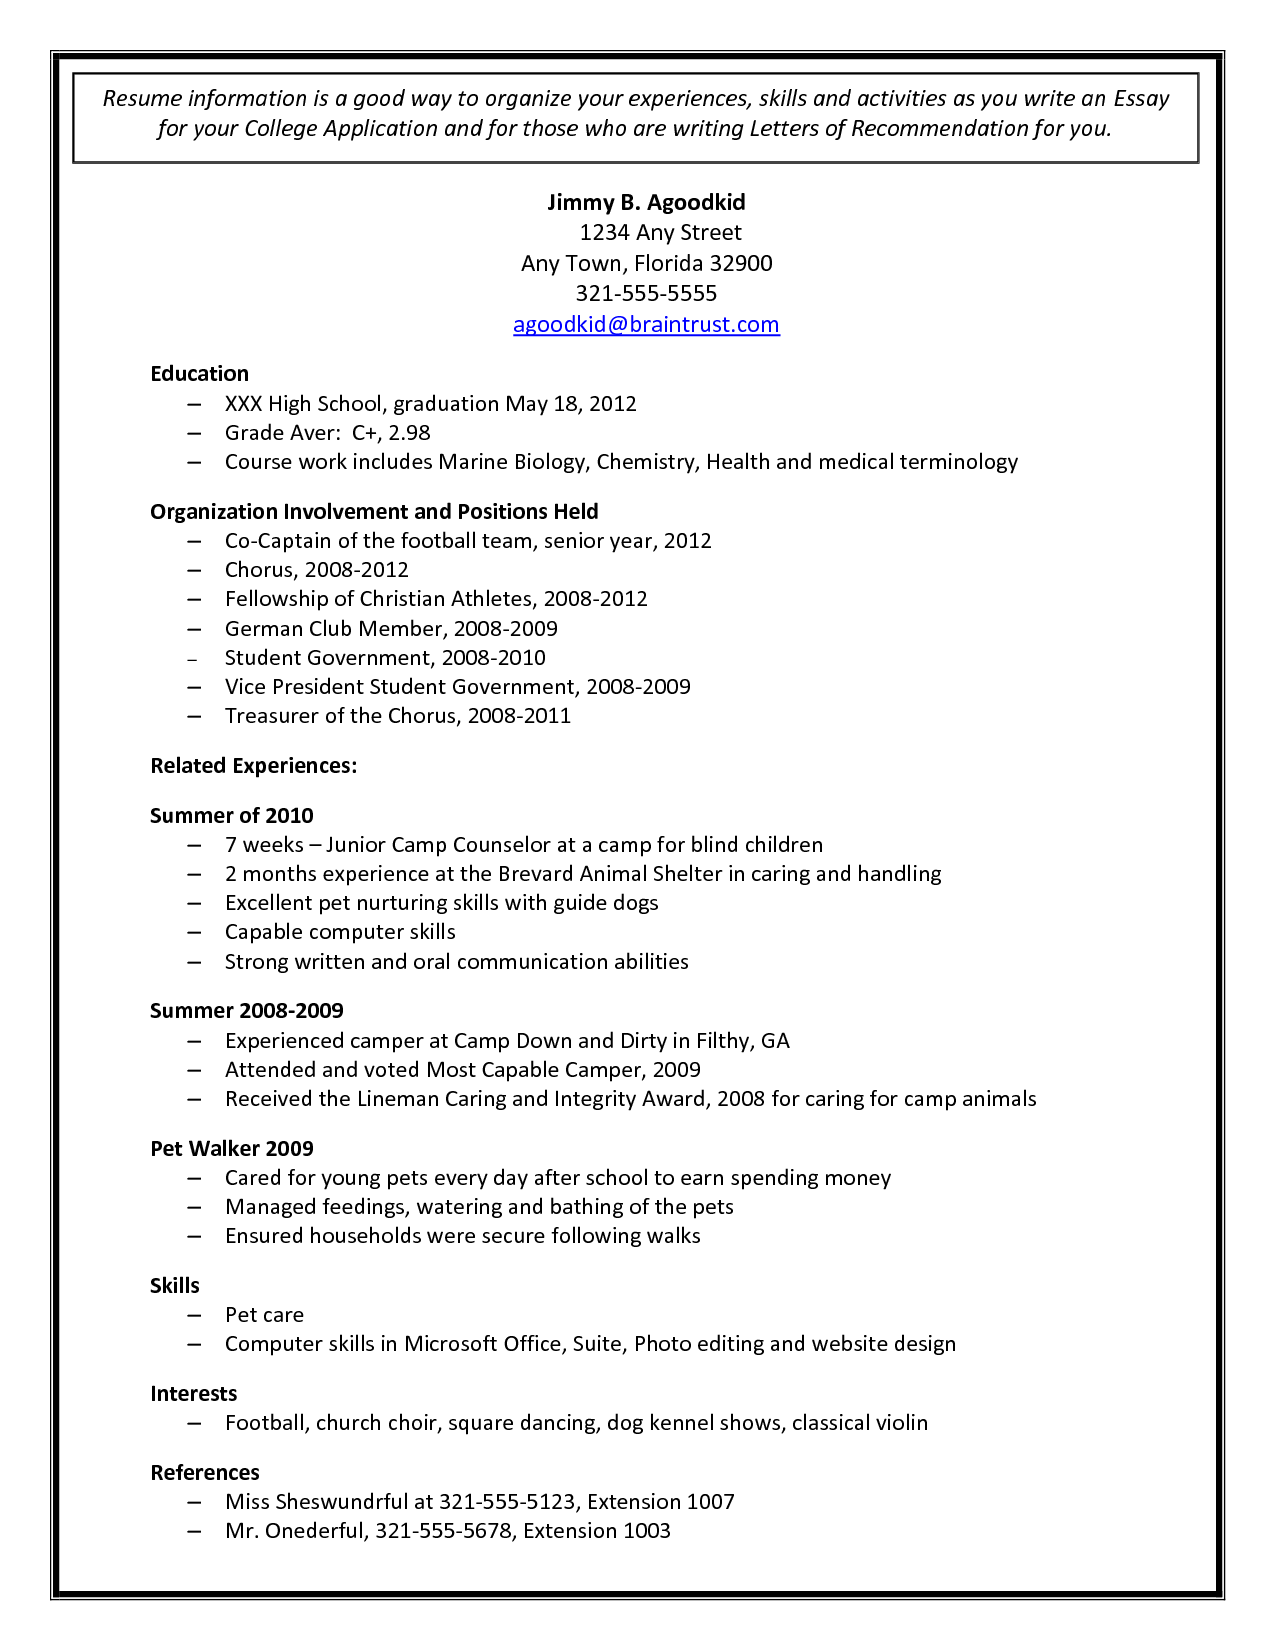 Resume Admission Resume Sample sample high school resume for college application no dues letter samples template admission a830cce8ac28864372060744ab08ee1a resumehtml